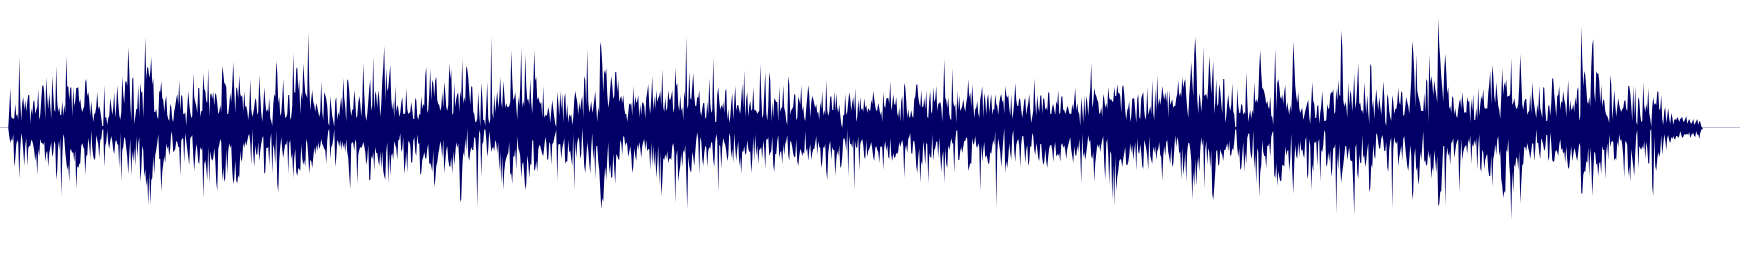 waveform of track #100617